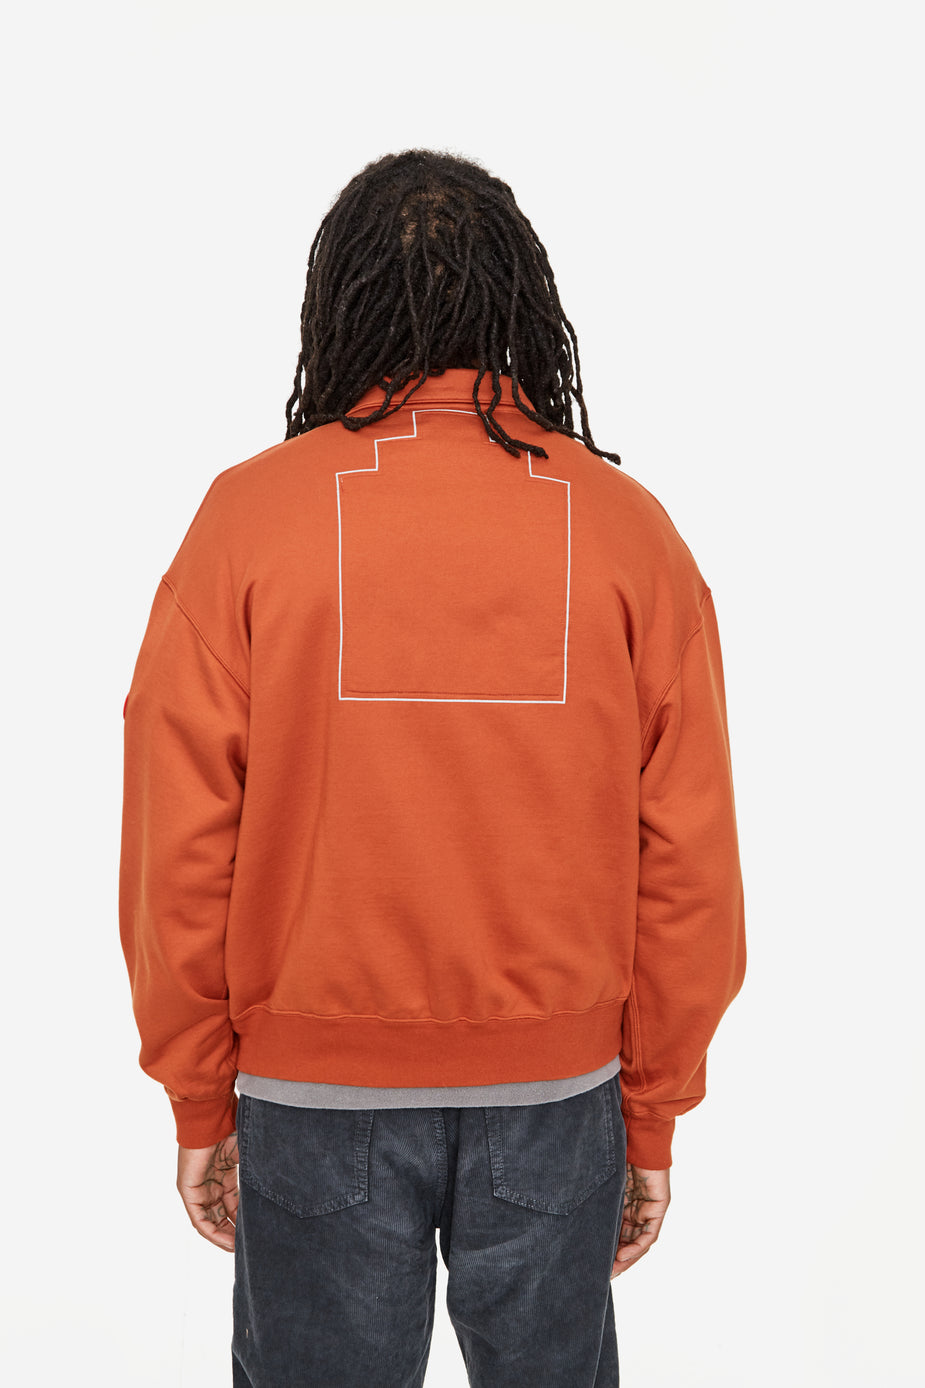 Cav Empt C.E Cav Empt Collared Light Zip Sweatshirt - Brown - Brown